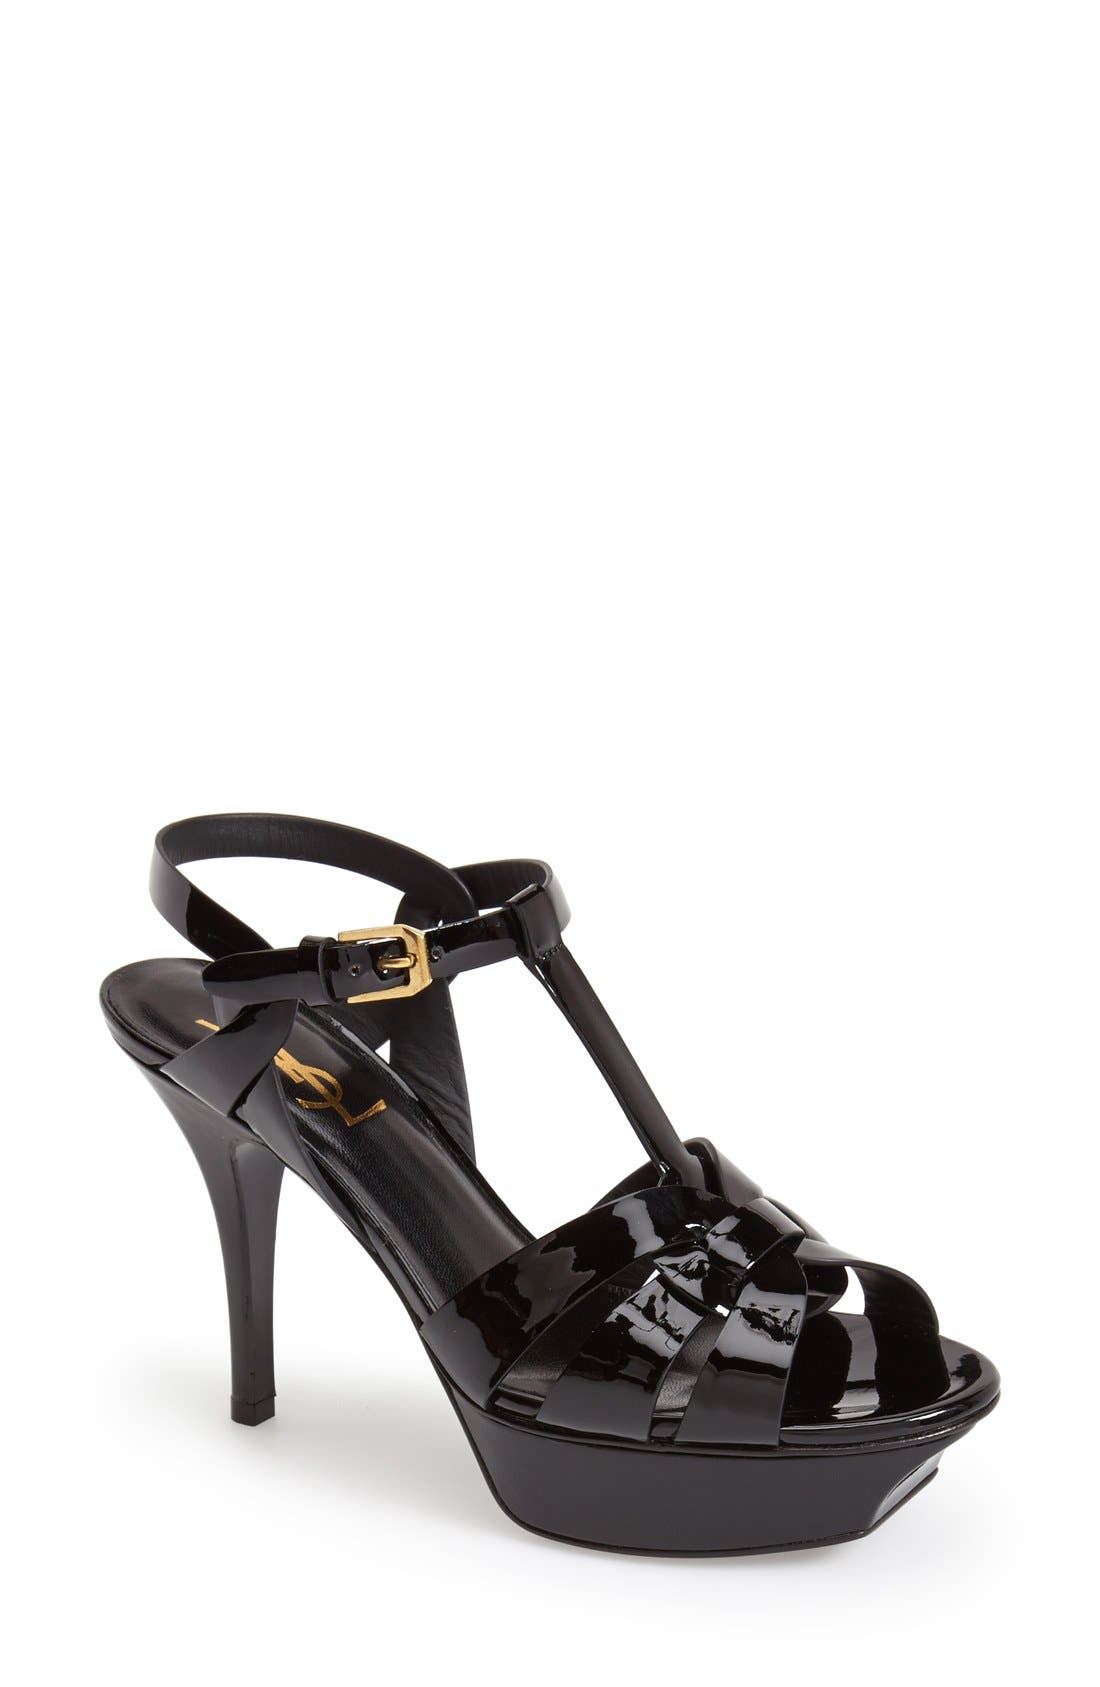 Main Image - Saint Laurent 'Tribute' T-Strap Sandal (Women)